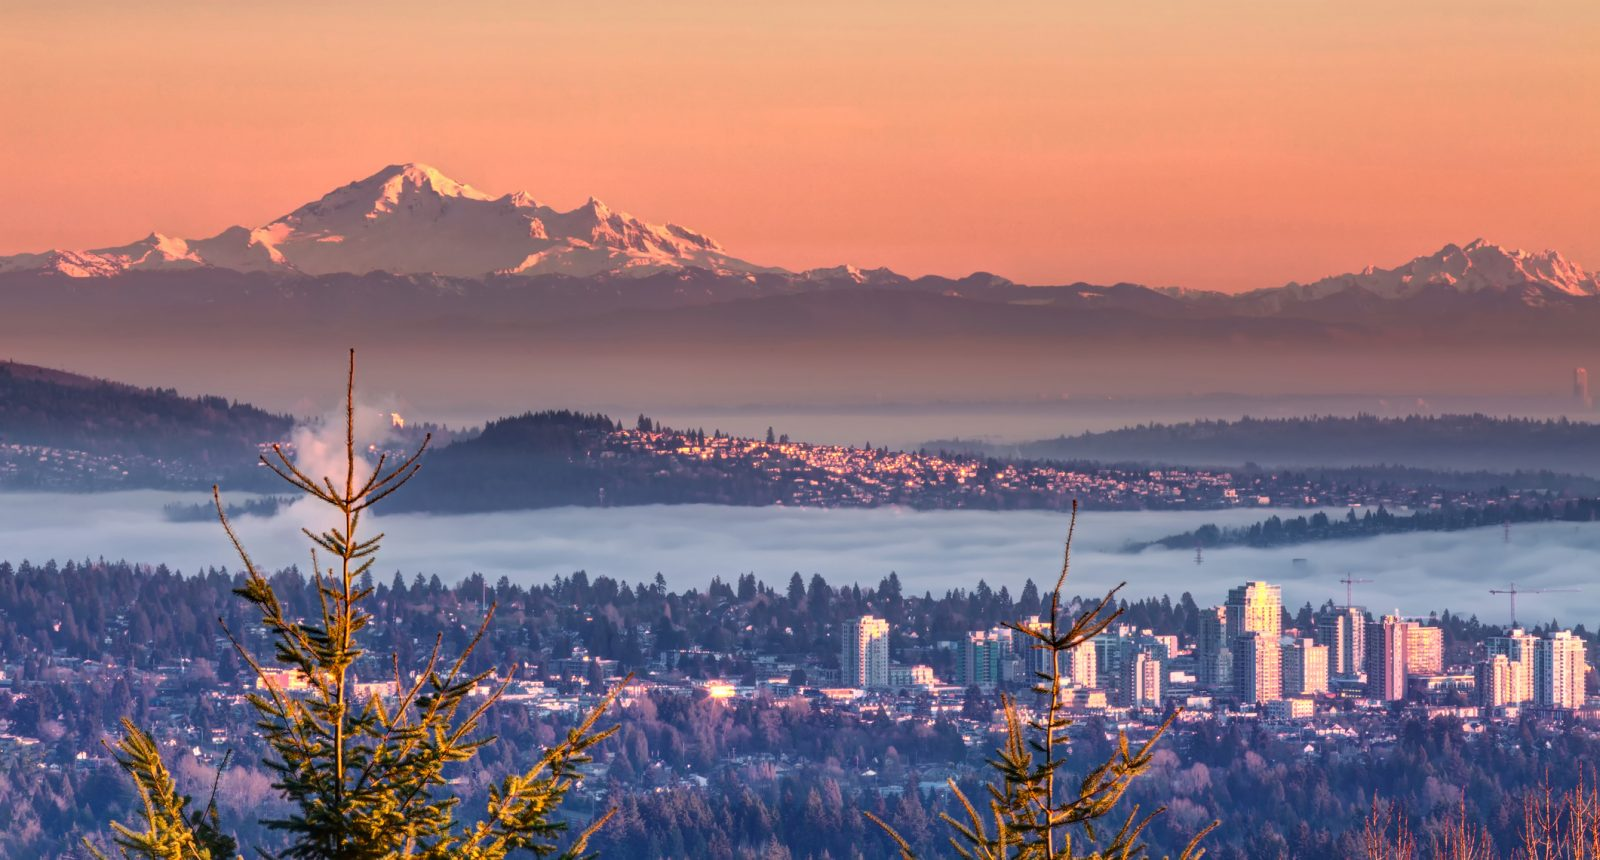 Foggy view of Mt Baker at sunset